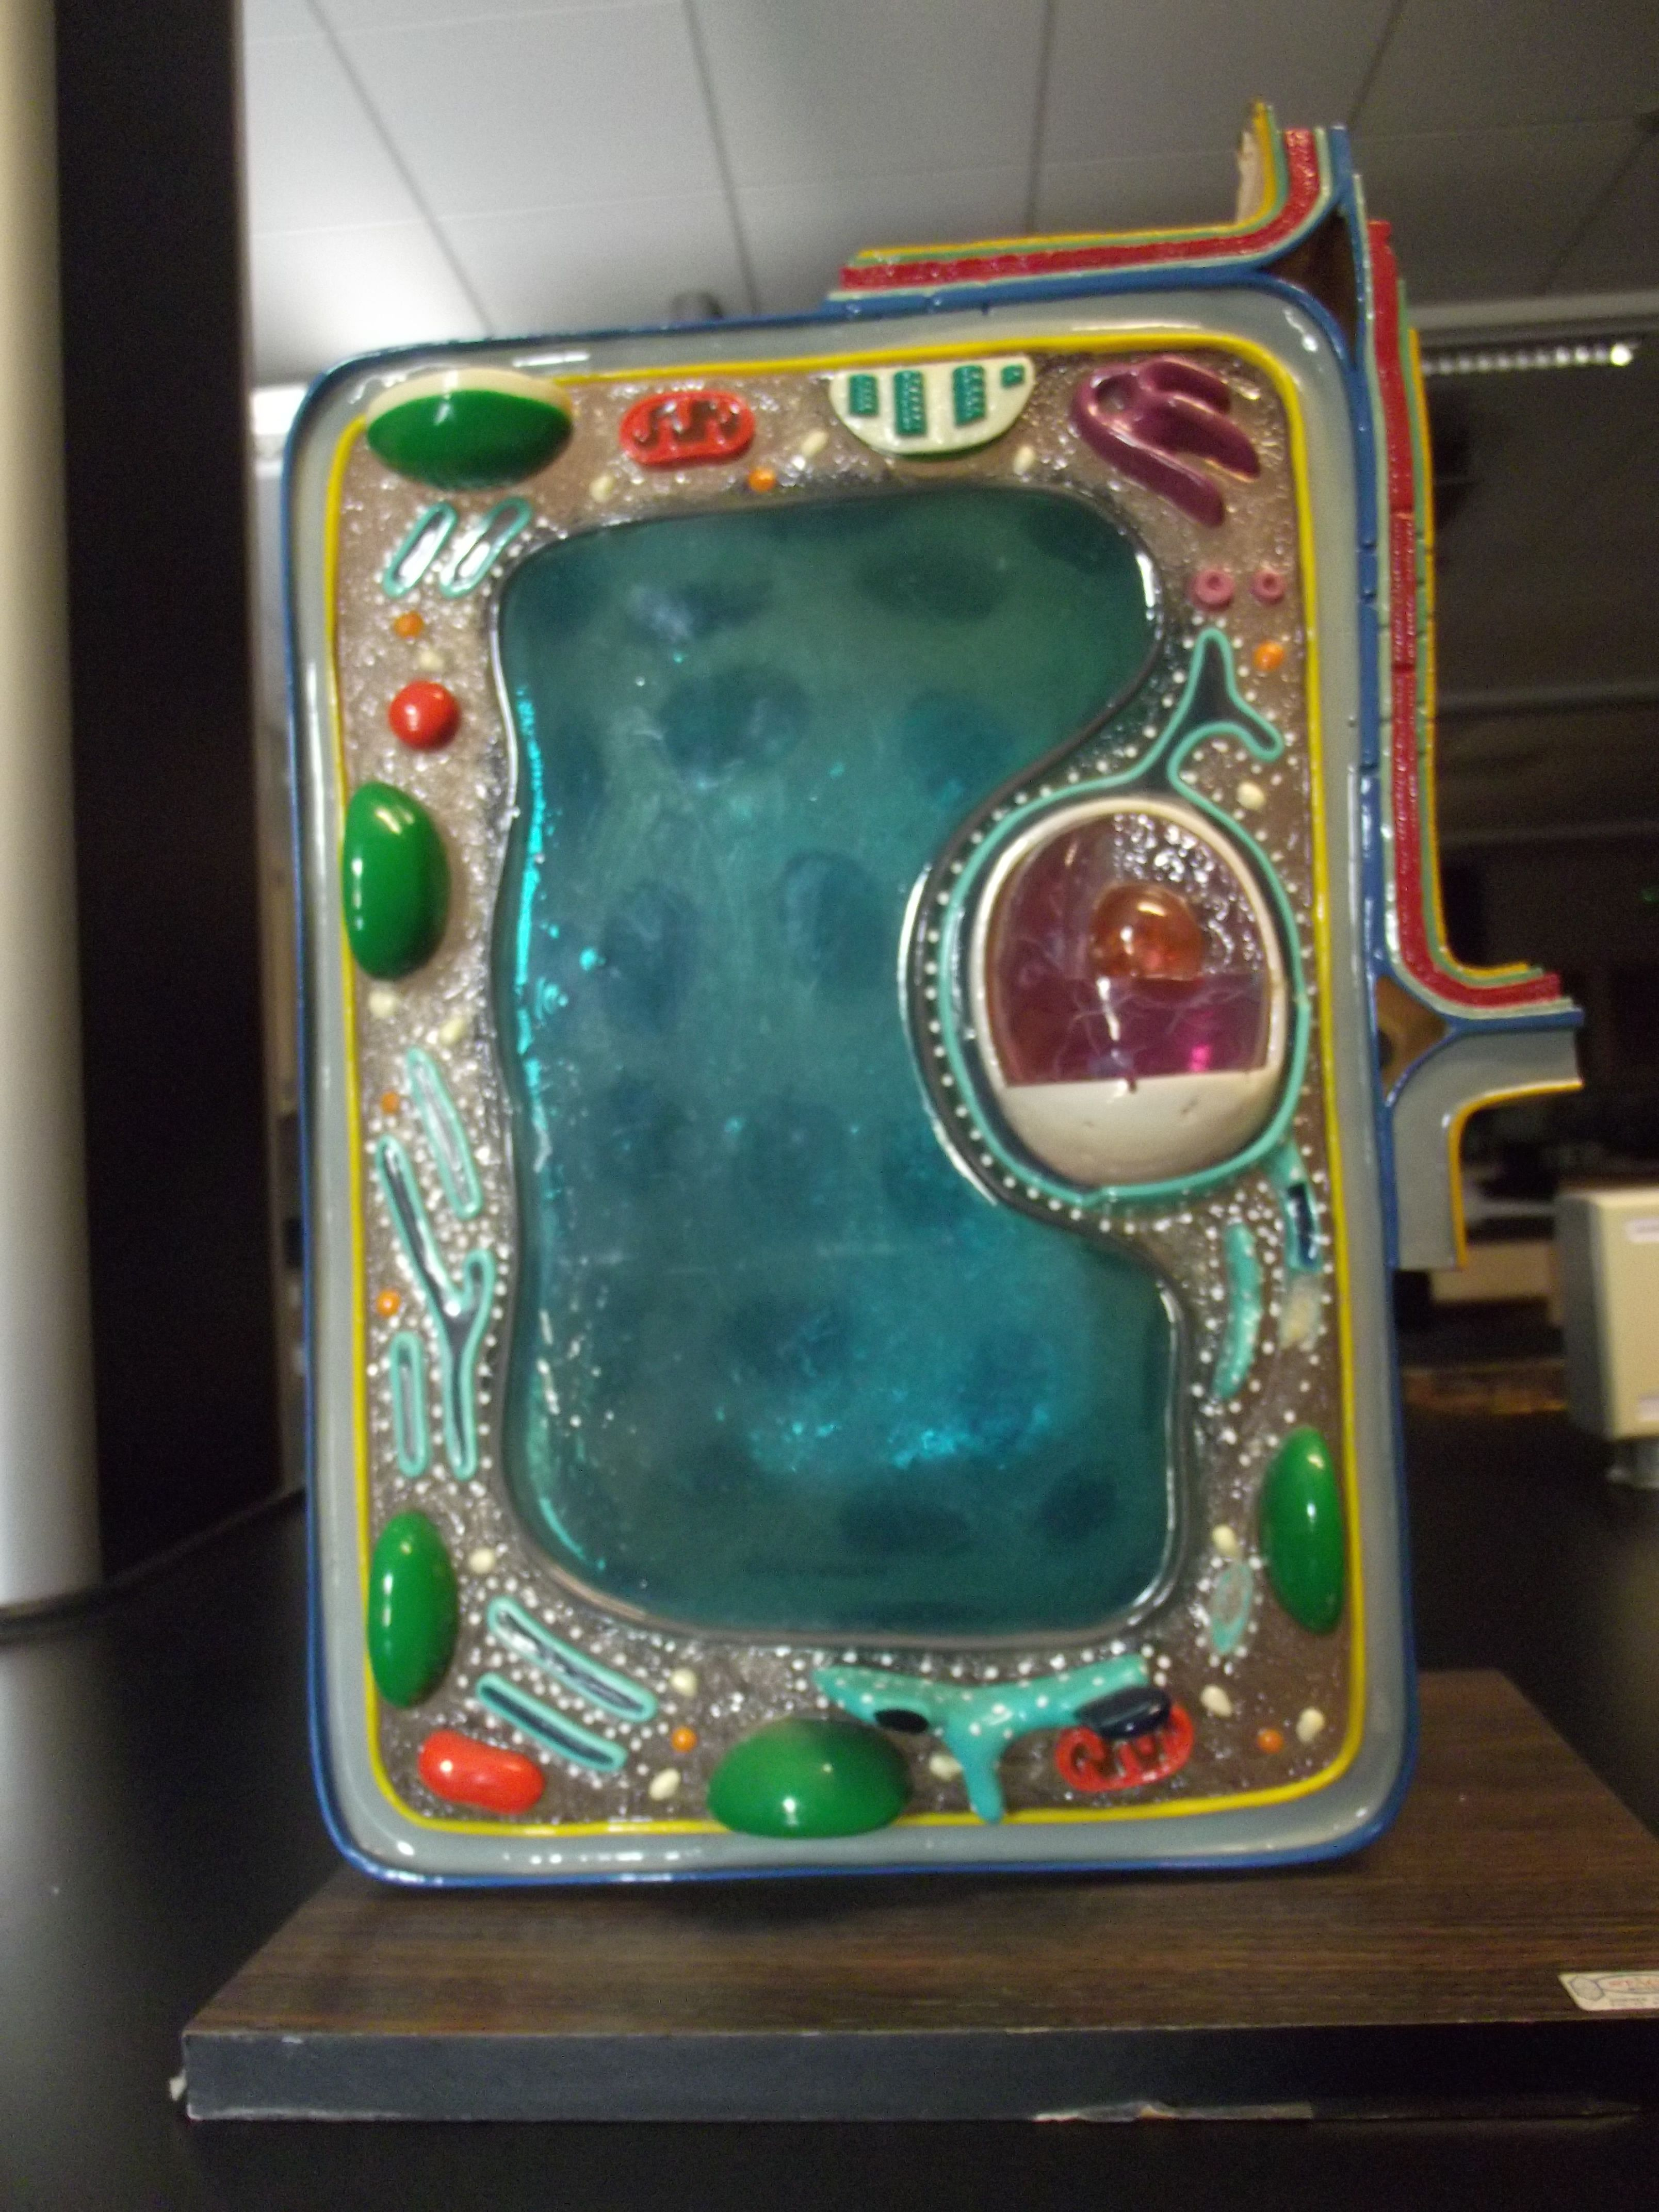 15 Plant Cell Model Ideas Clay Edible Recycled And How To Make 3d Animal Diagram Labeled Of A With Labels Great Way For Students Learn About The Different Parts Through Creating Labeling Writing Presenting Class Plantcell